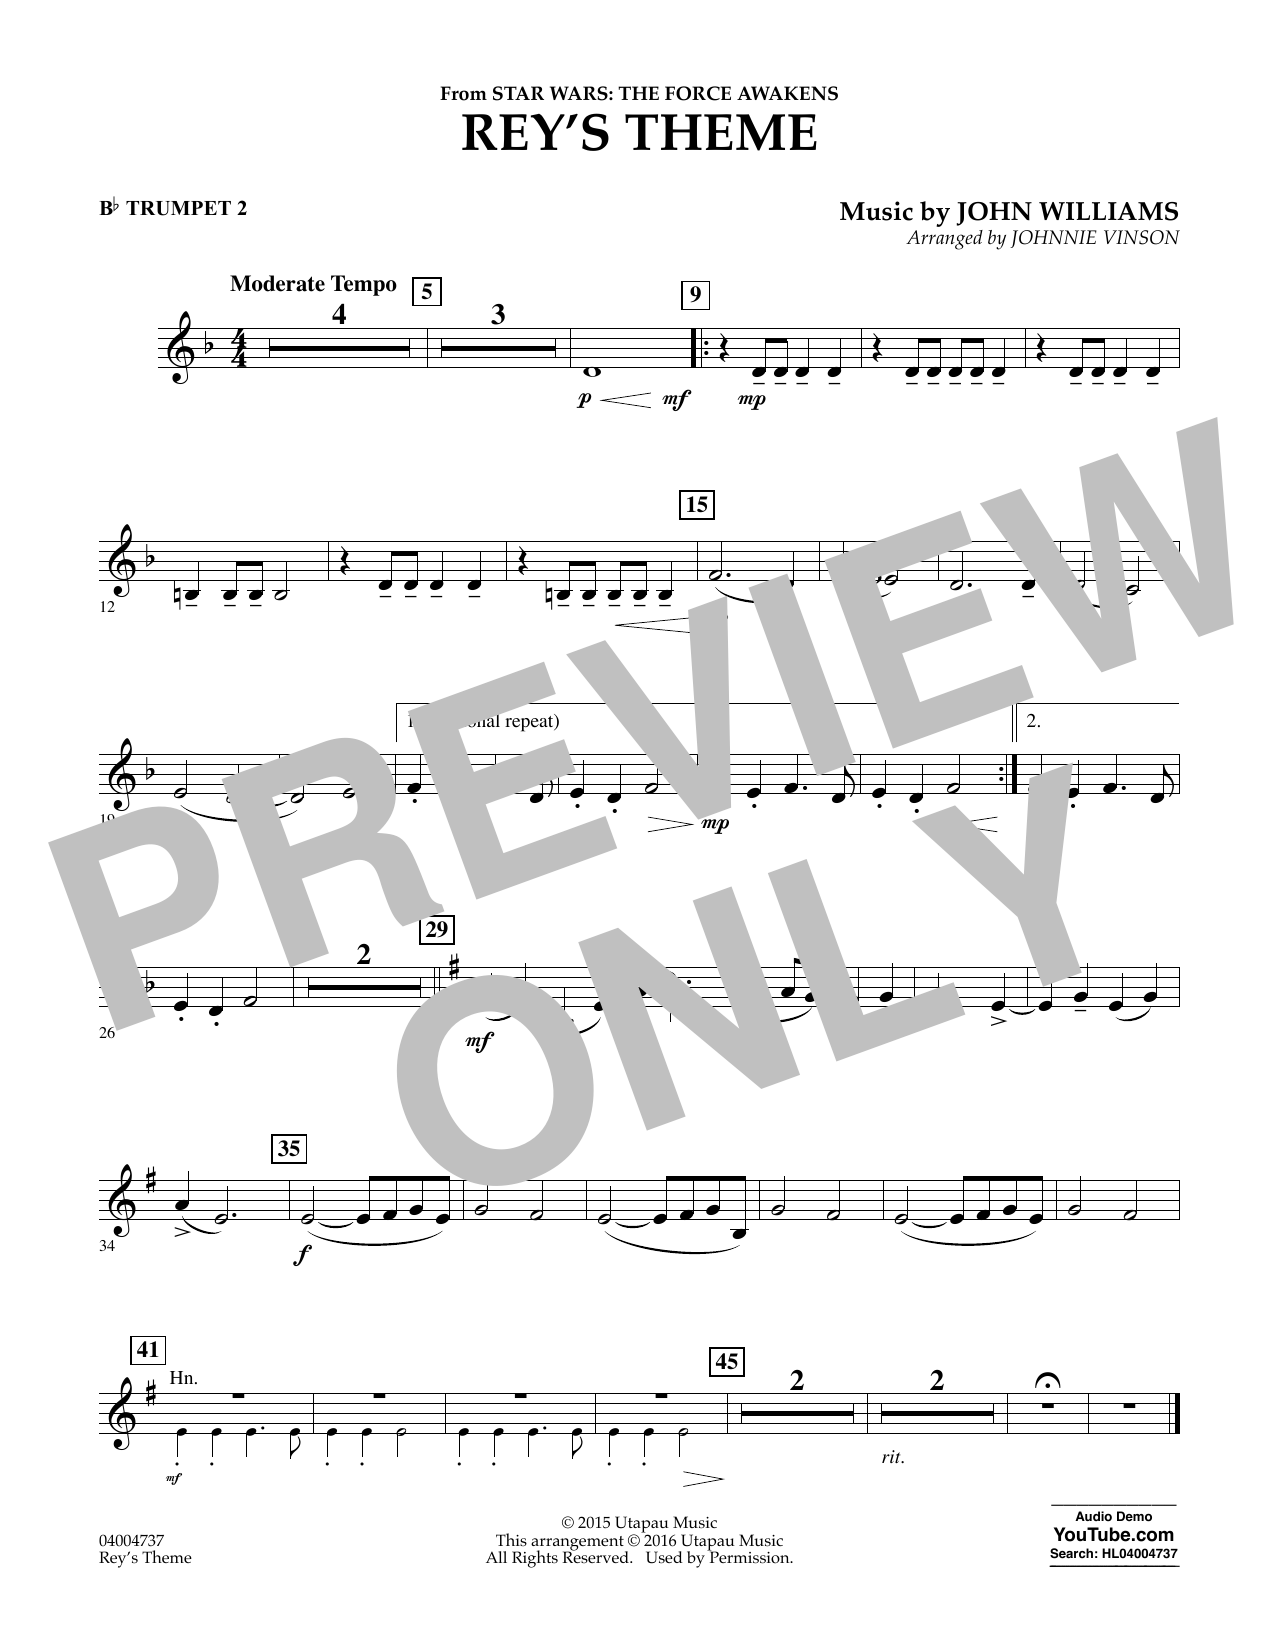 Rey's Theme (from Star Wars: The Force Awakens) - Bb Trumpet 2 (Concert Band)